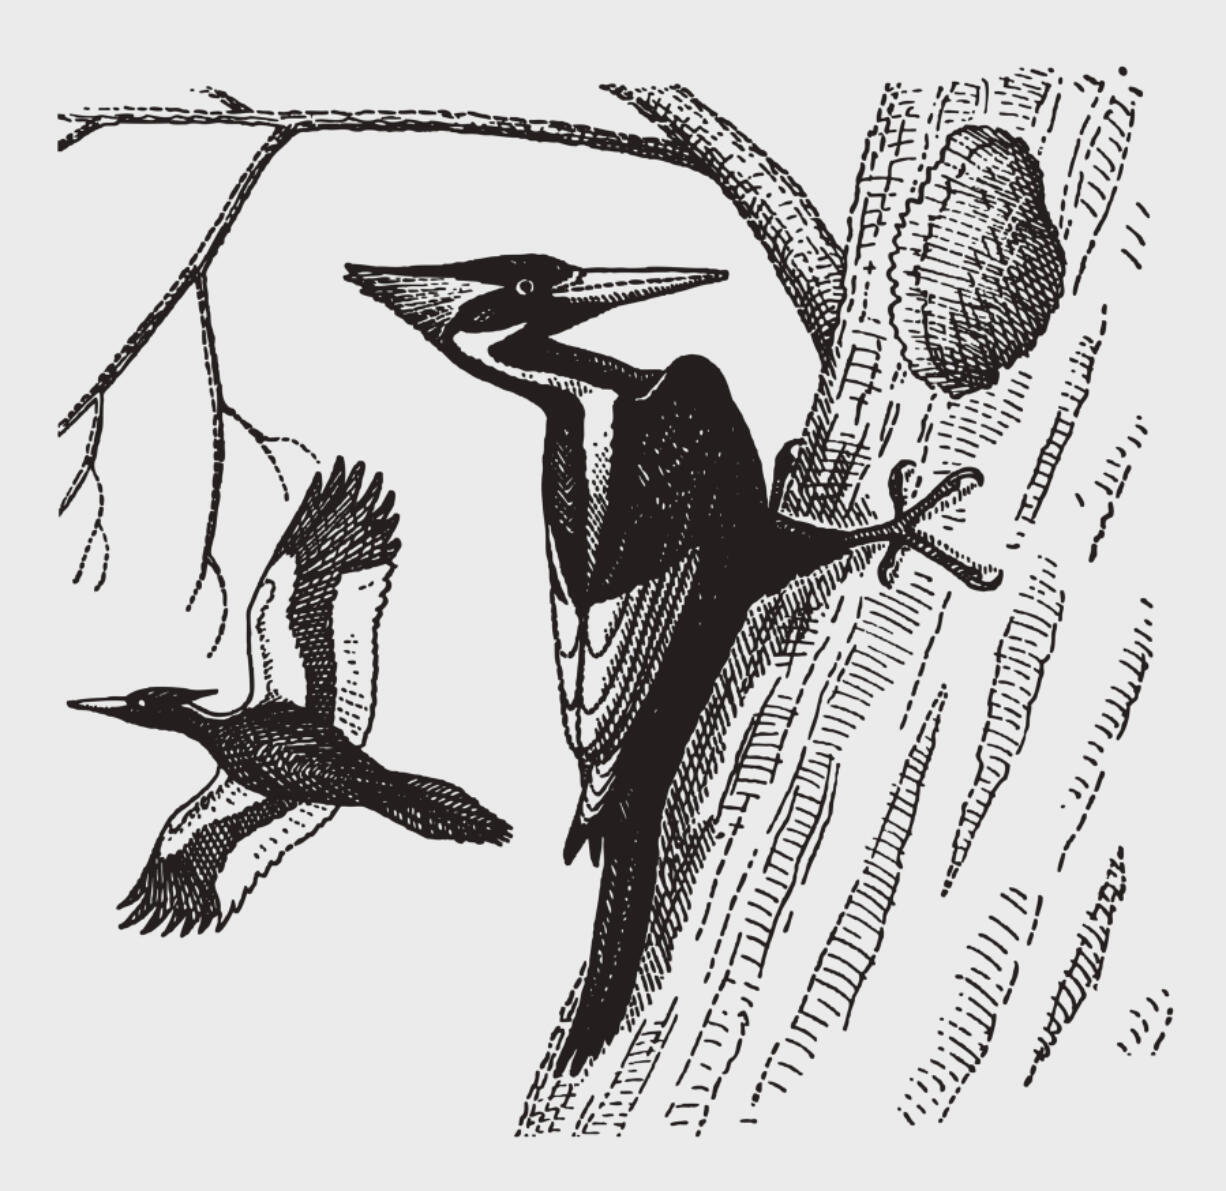 An extinct ivory-billed woodpecker excavating a hole in a tree trunk in an illustration patterned after an engraving from the early 20th century.